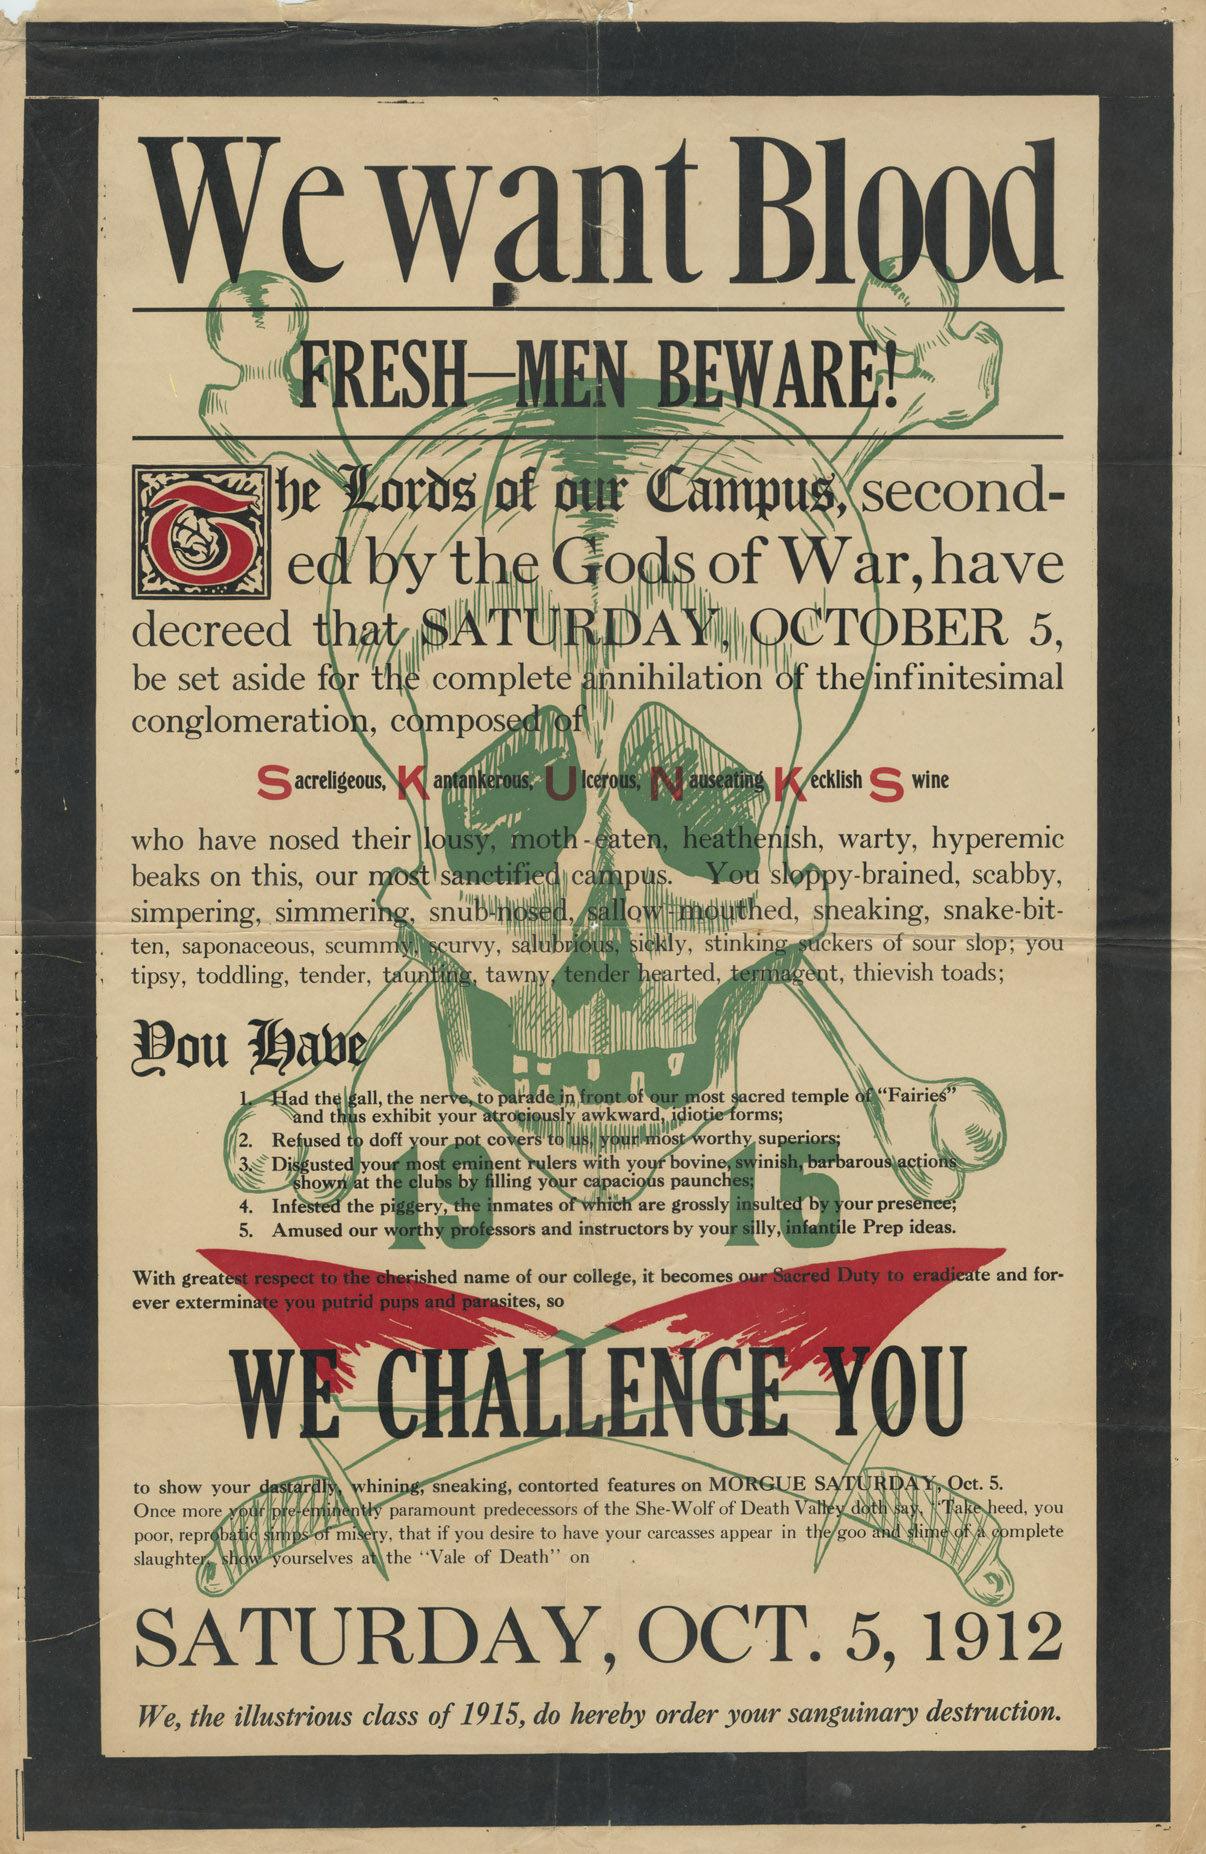 We Want Blood Poster, 1912